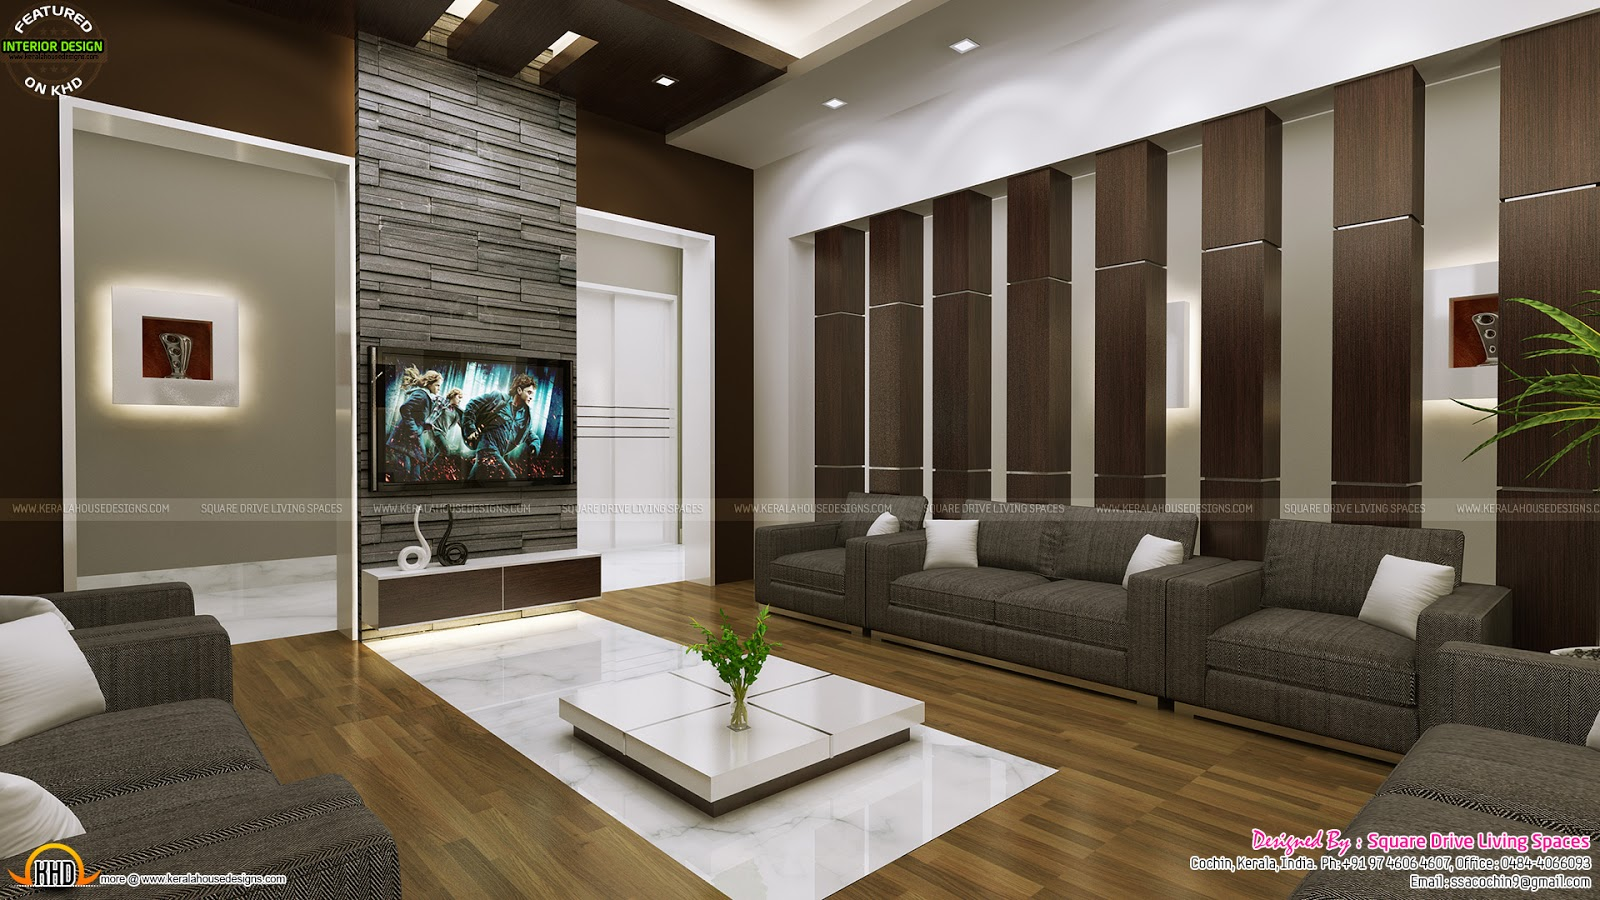 Attractive home interior ideas kerala home design and - Interior design styles living room ...